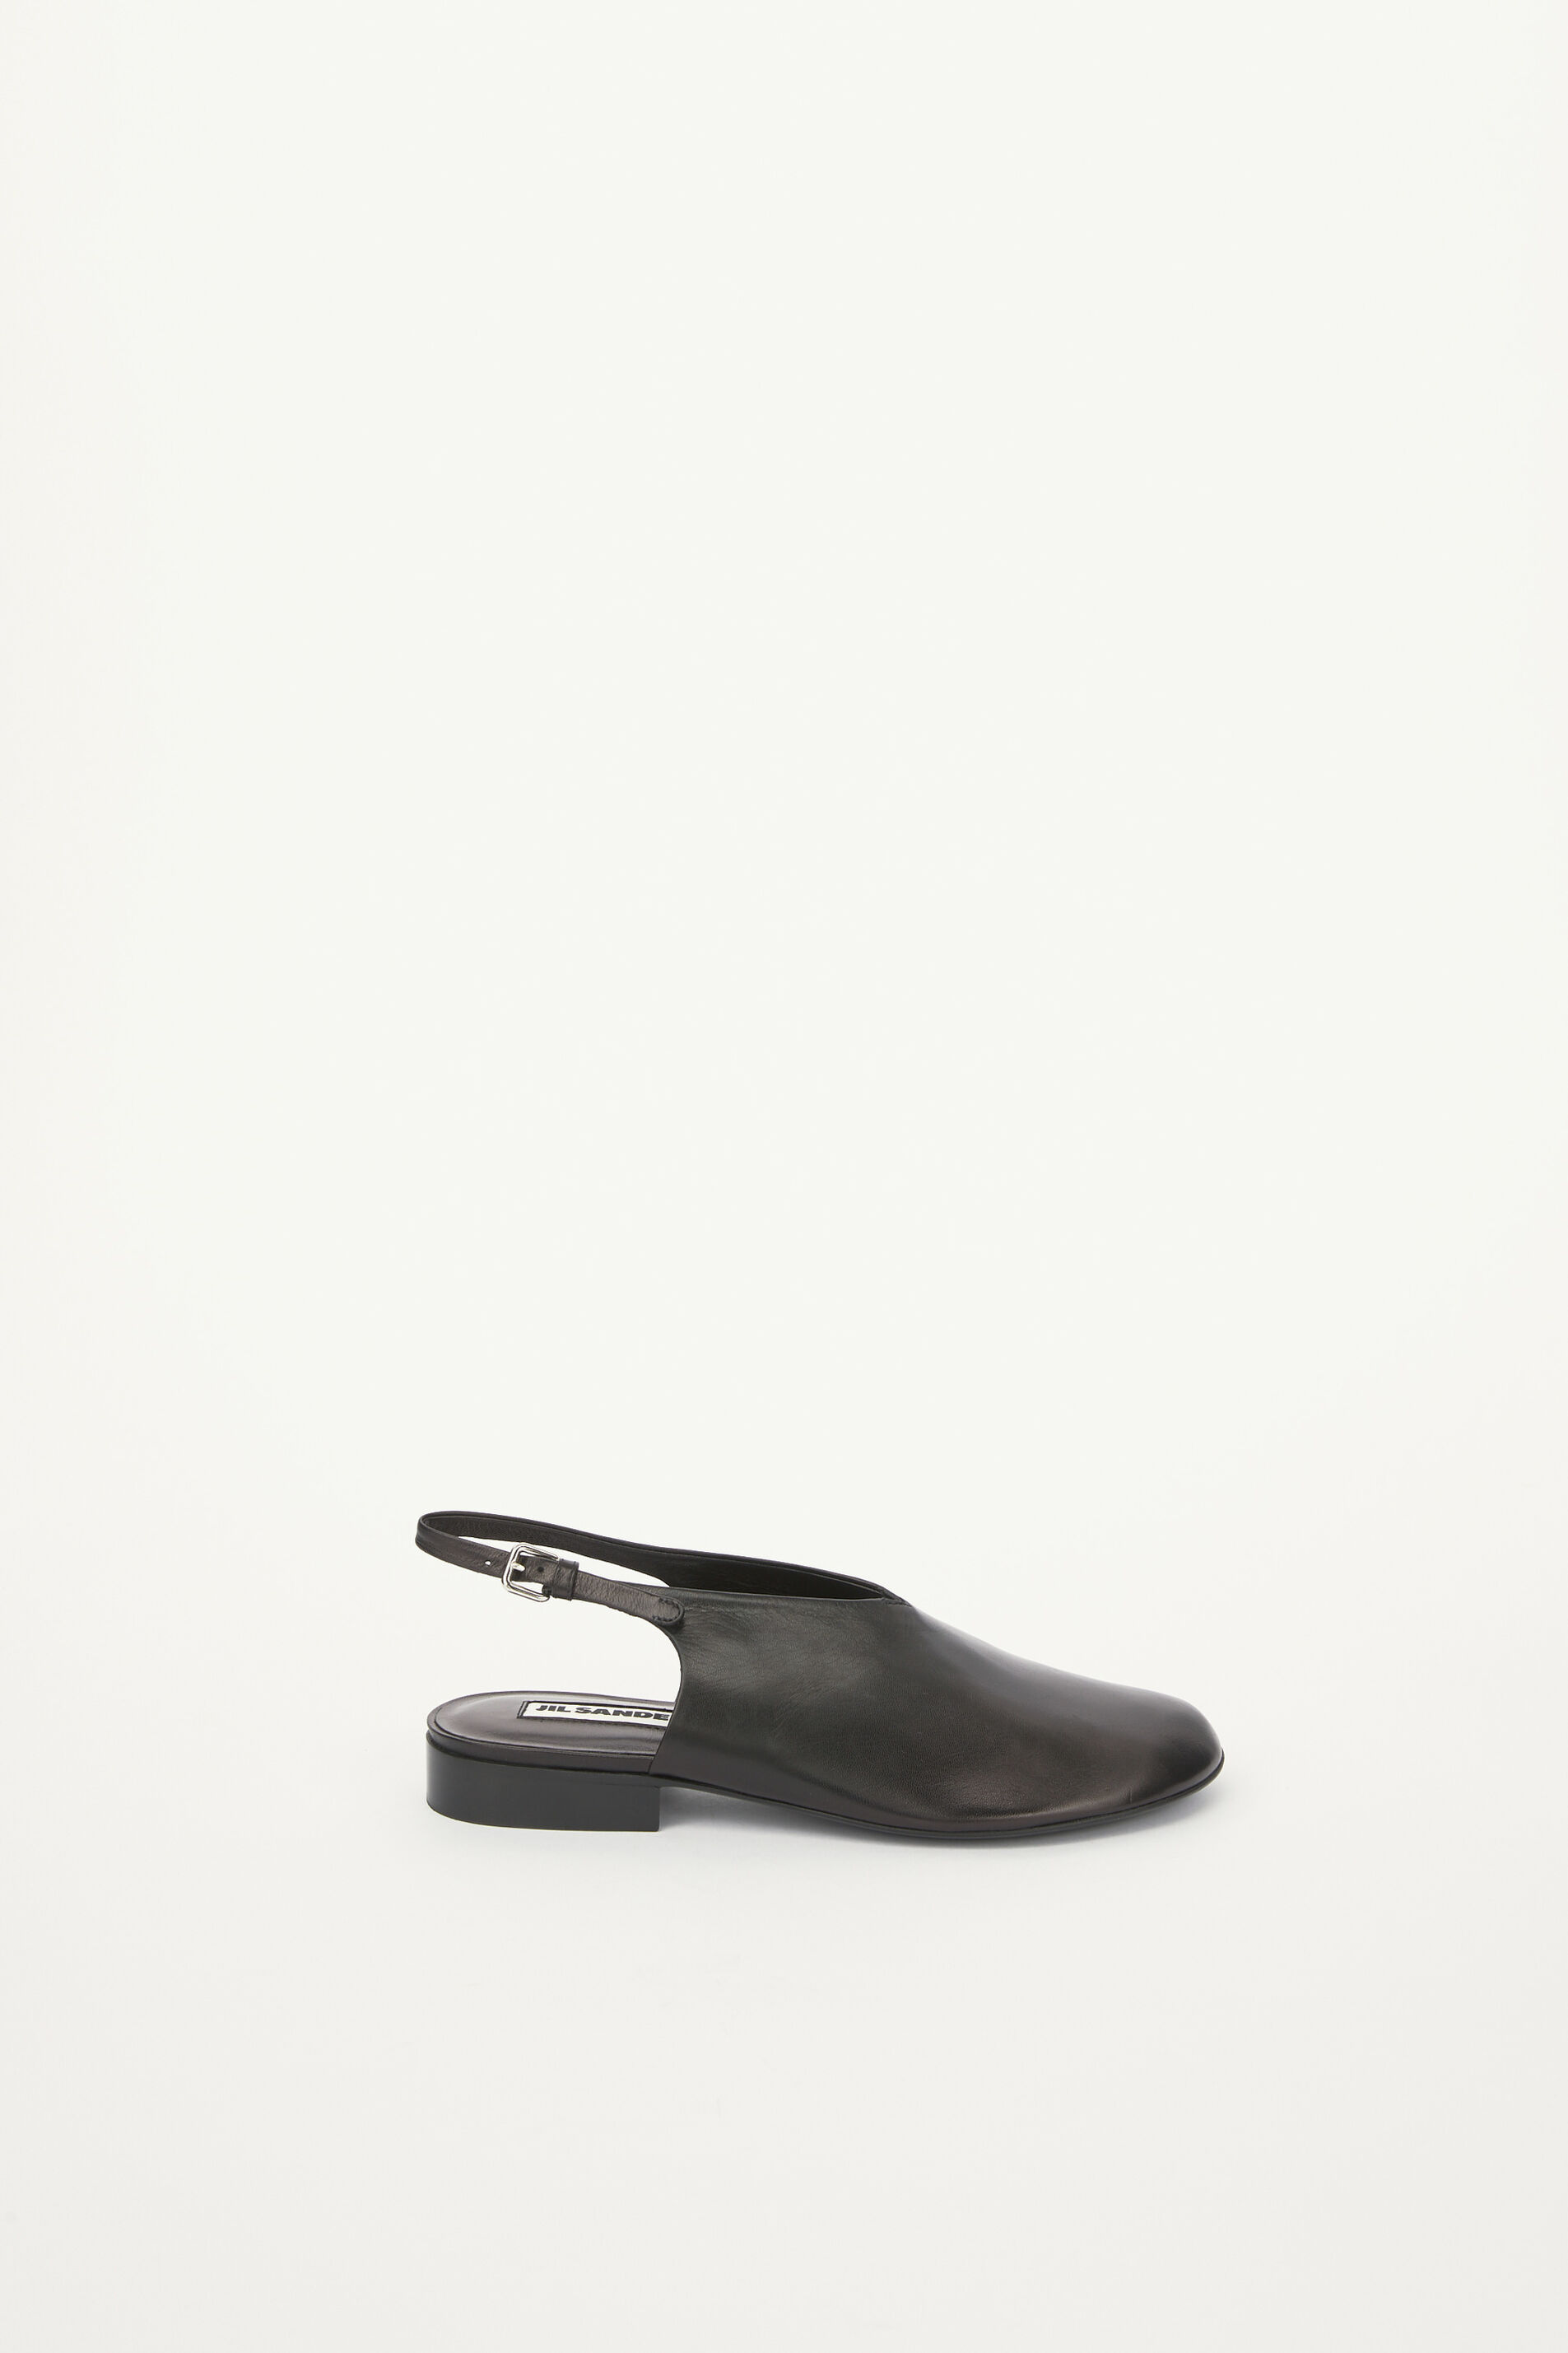 Flat Shoes, black, large